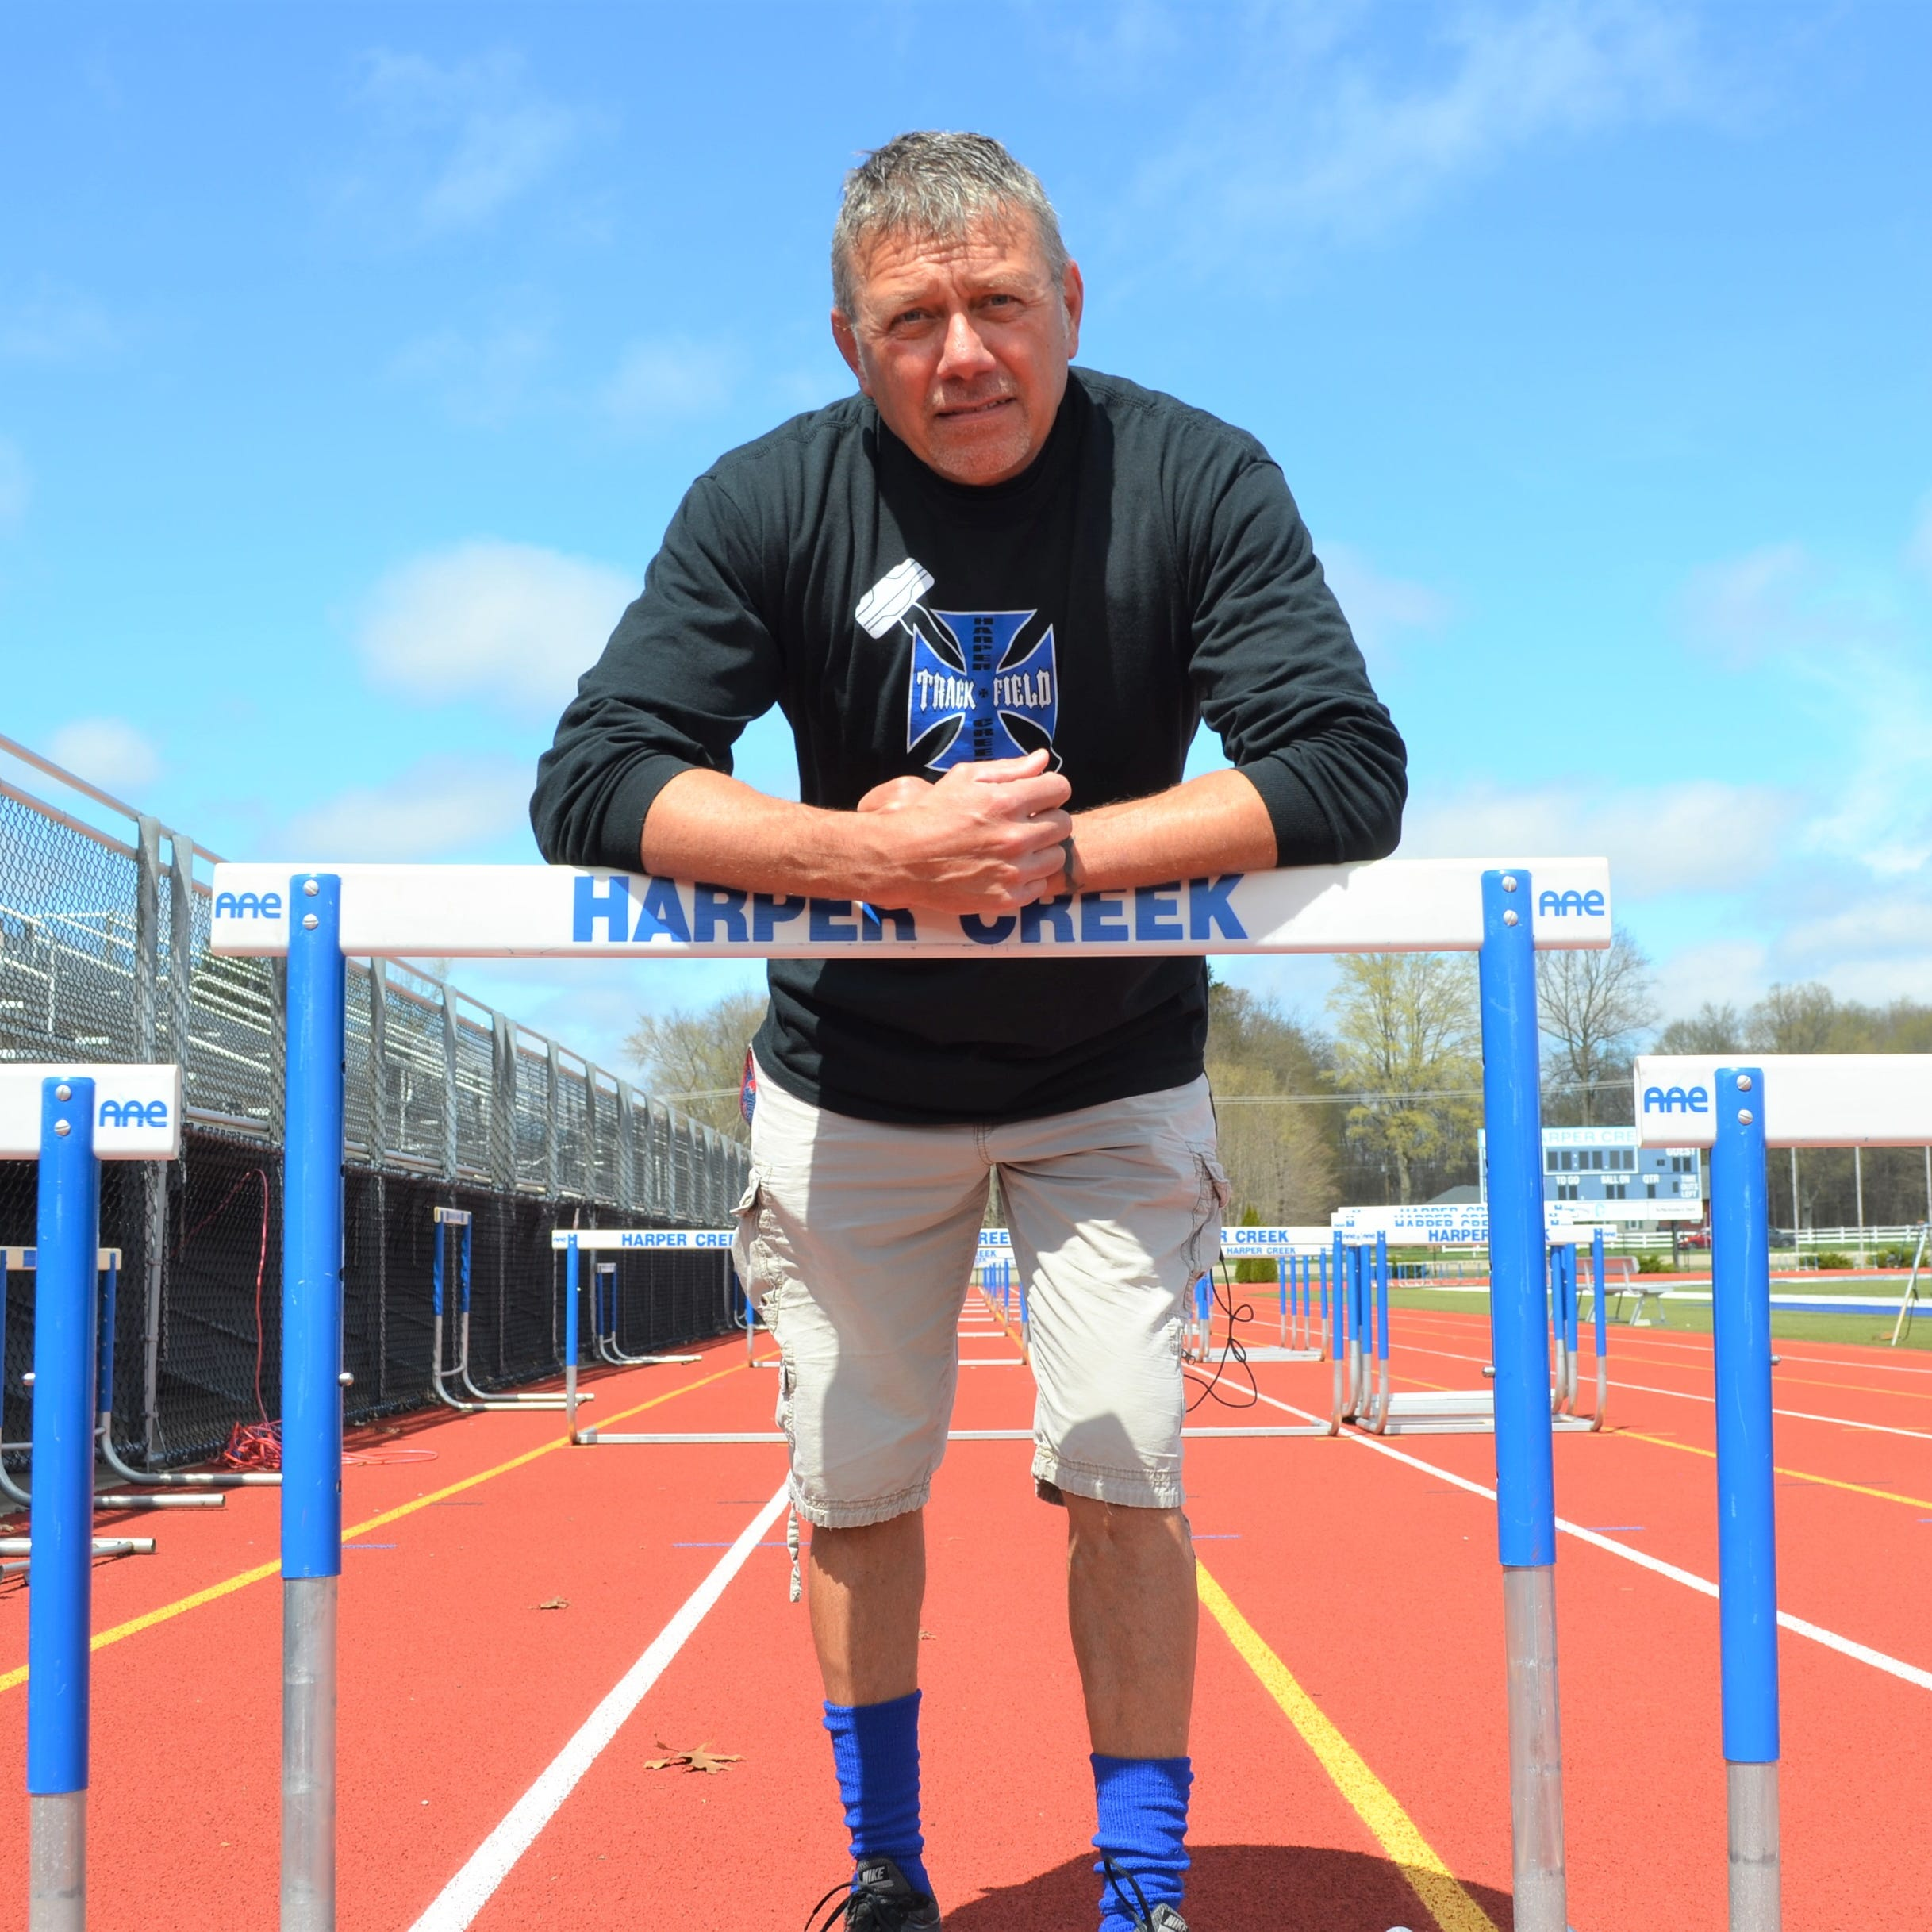 Harper Creek's Quick reaches 100 wins by focusing on the kids more than the victories